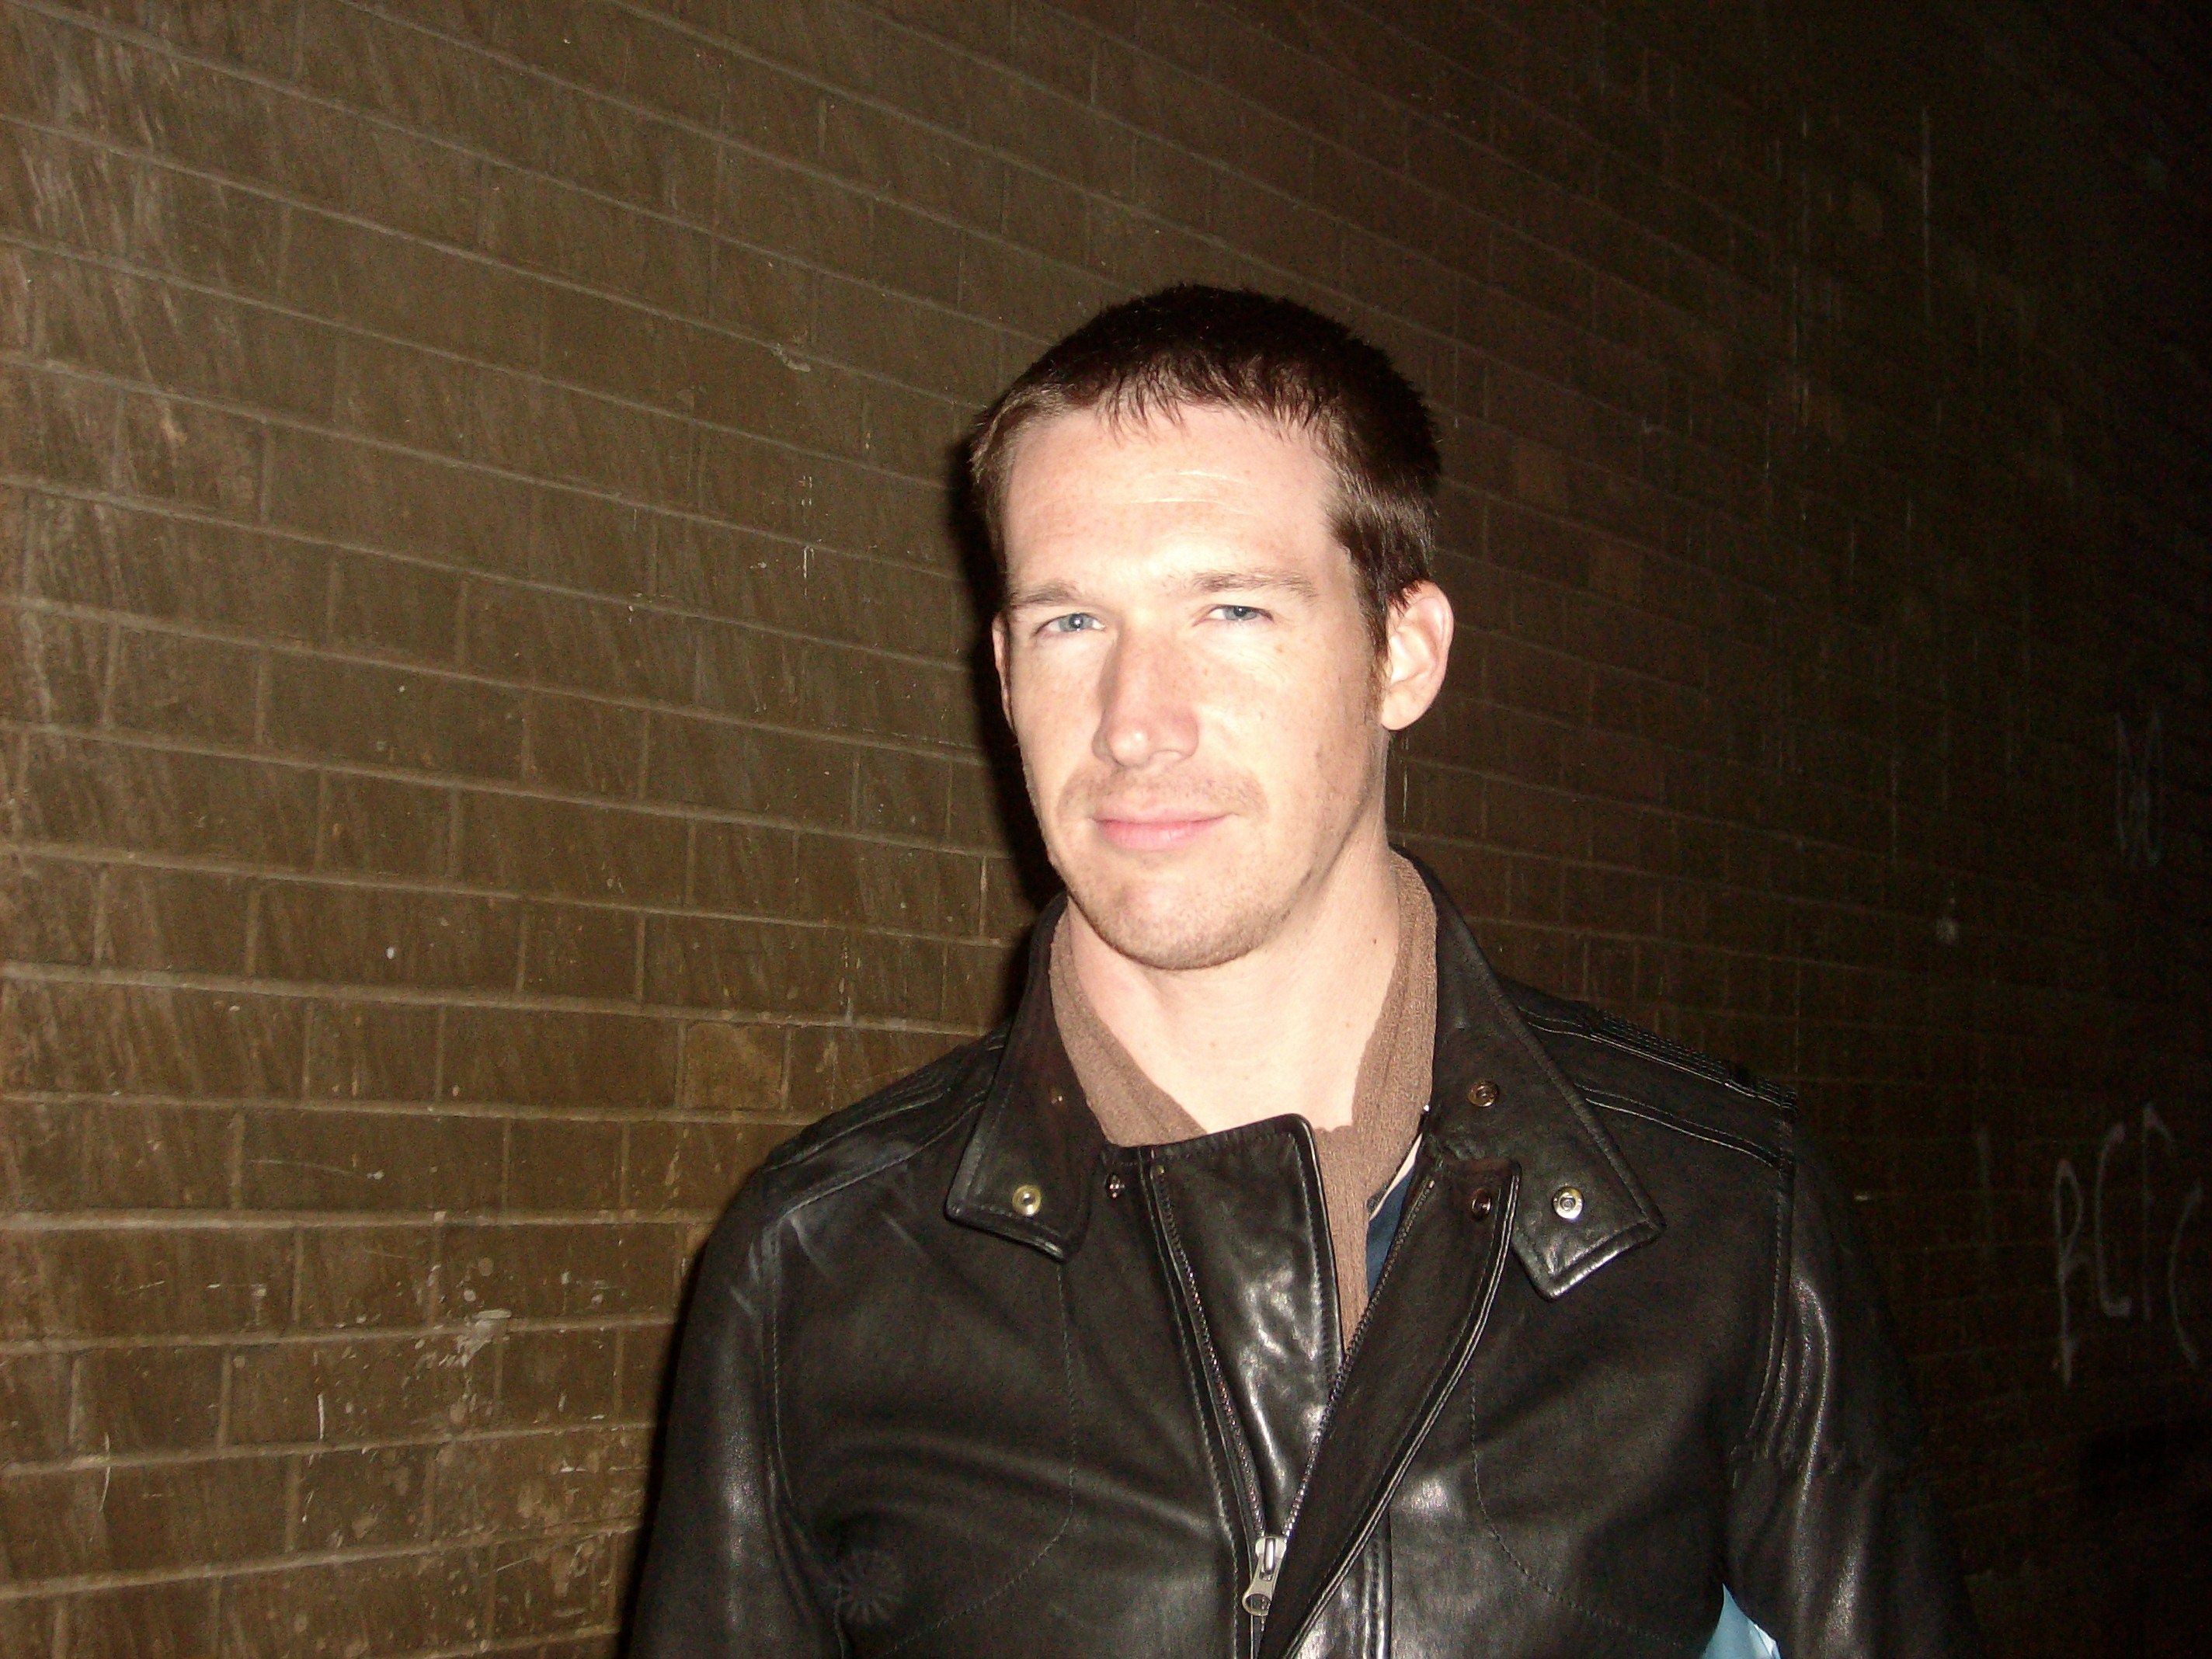 Zach Filkins - Wikipedia, the free encyclopedia